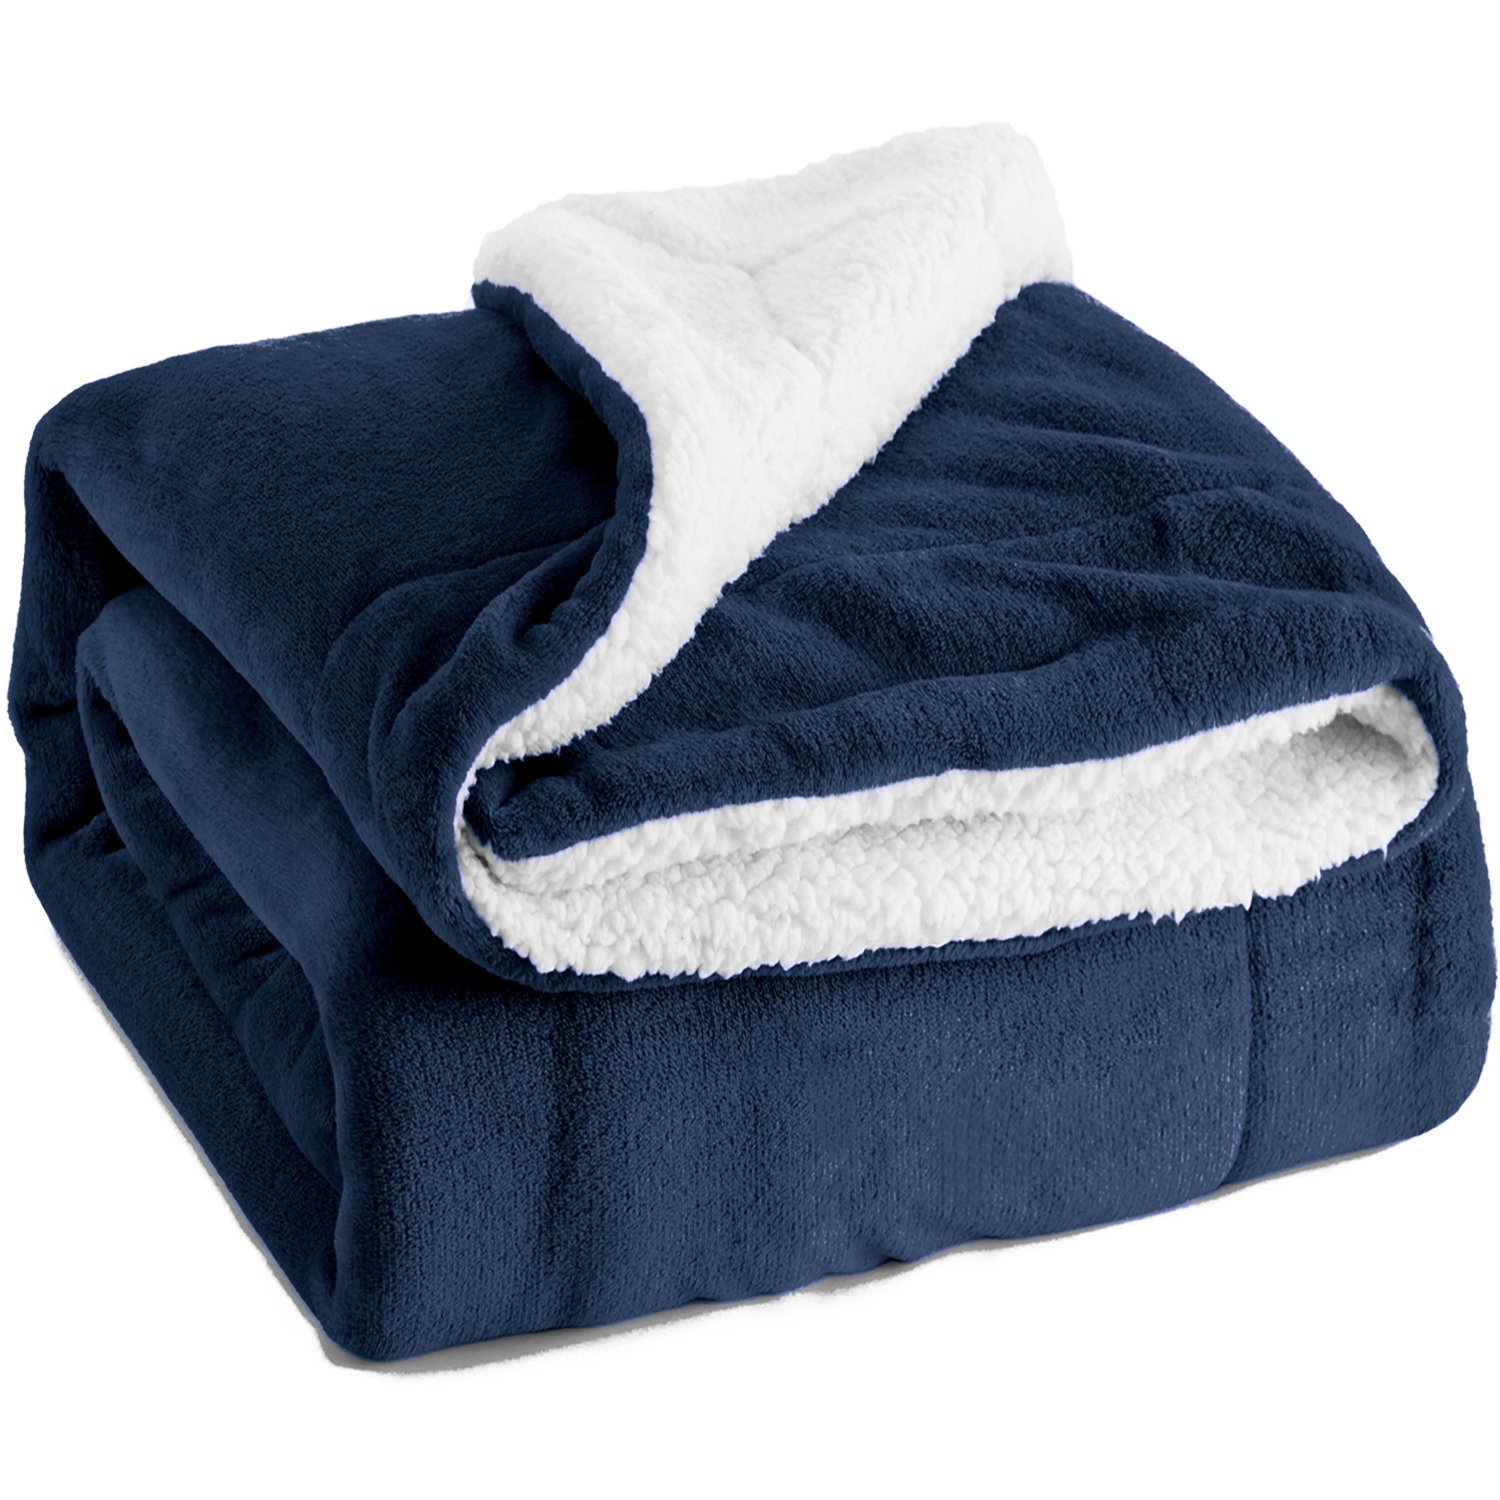 Bedsure Sherpa Bed Blanket Navy Blue Queen Size 90x90 Bedding Fleece Reversible Blanket for Bed and Couch